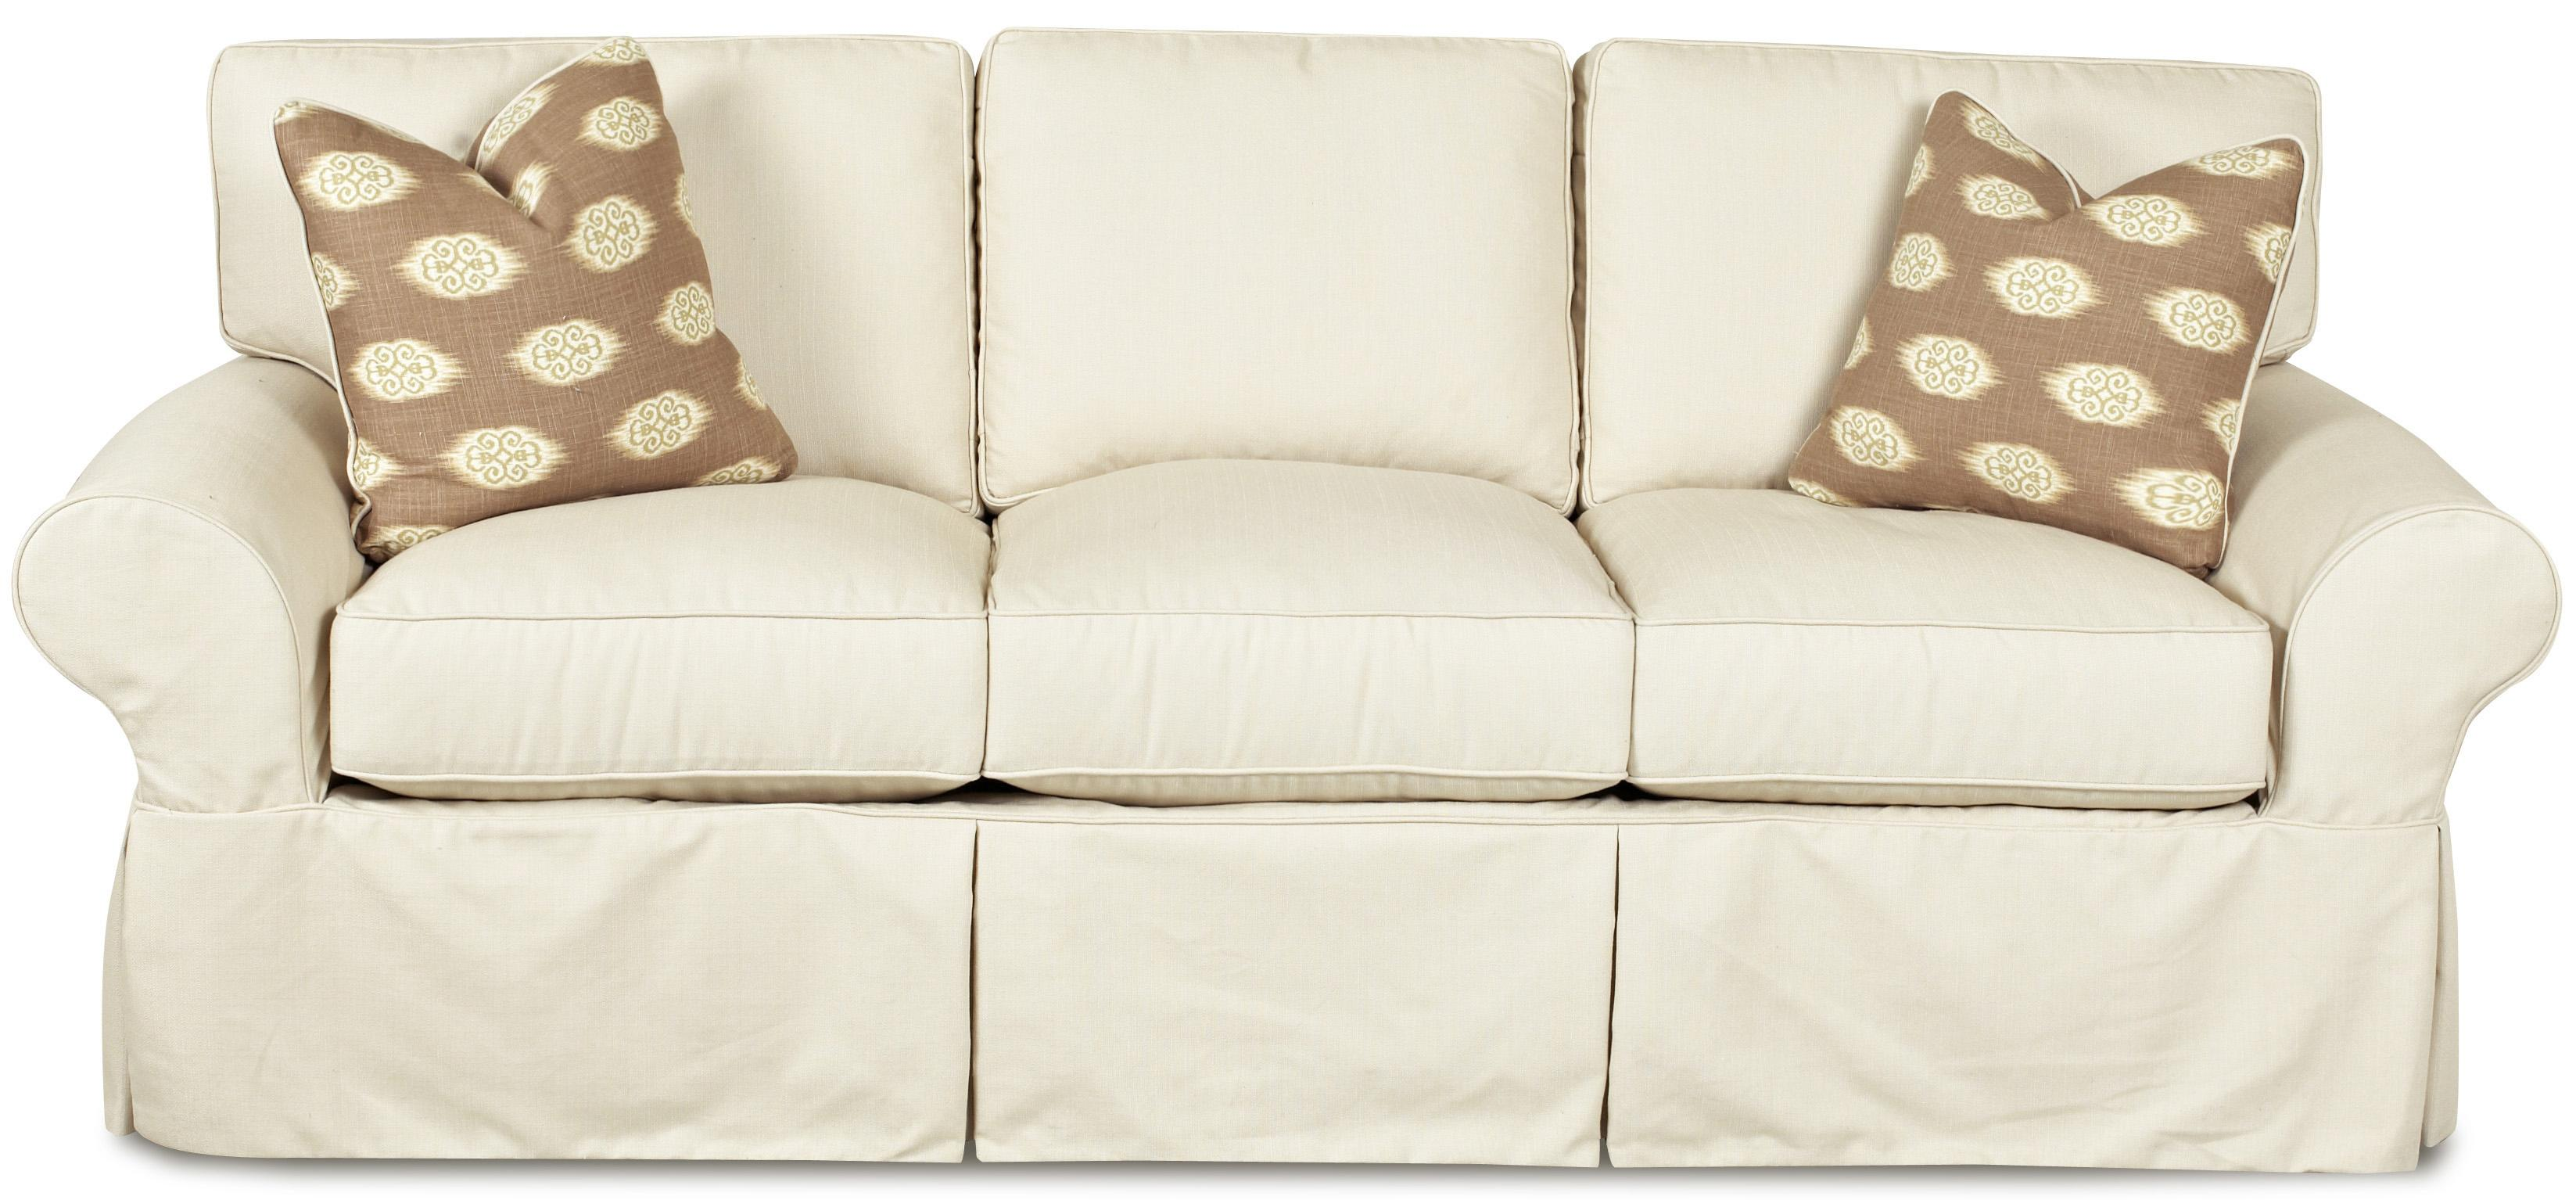 slipcover brown ip scroll com sofa fit walmart slipcovers sure